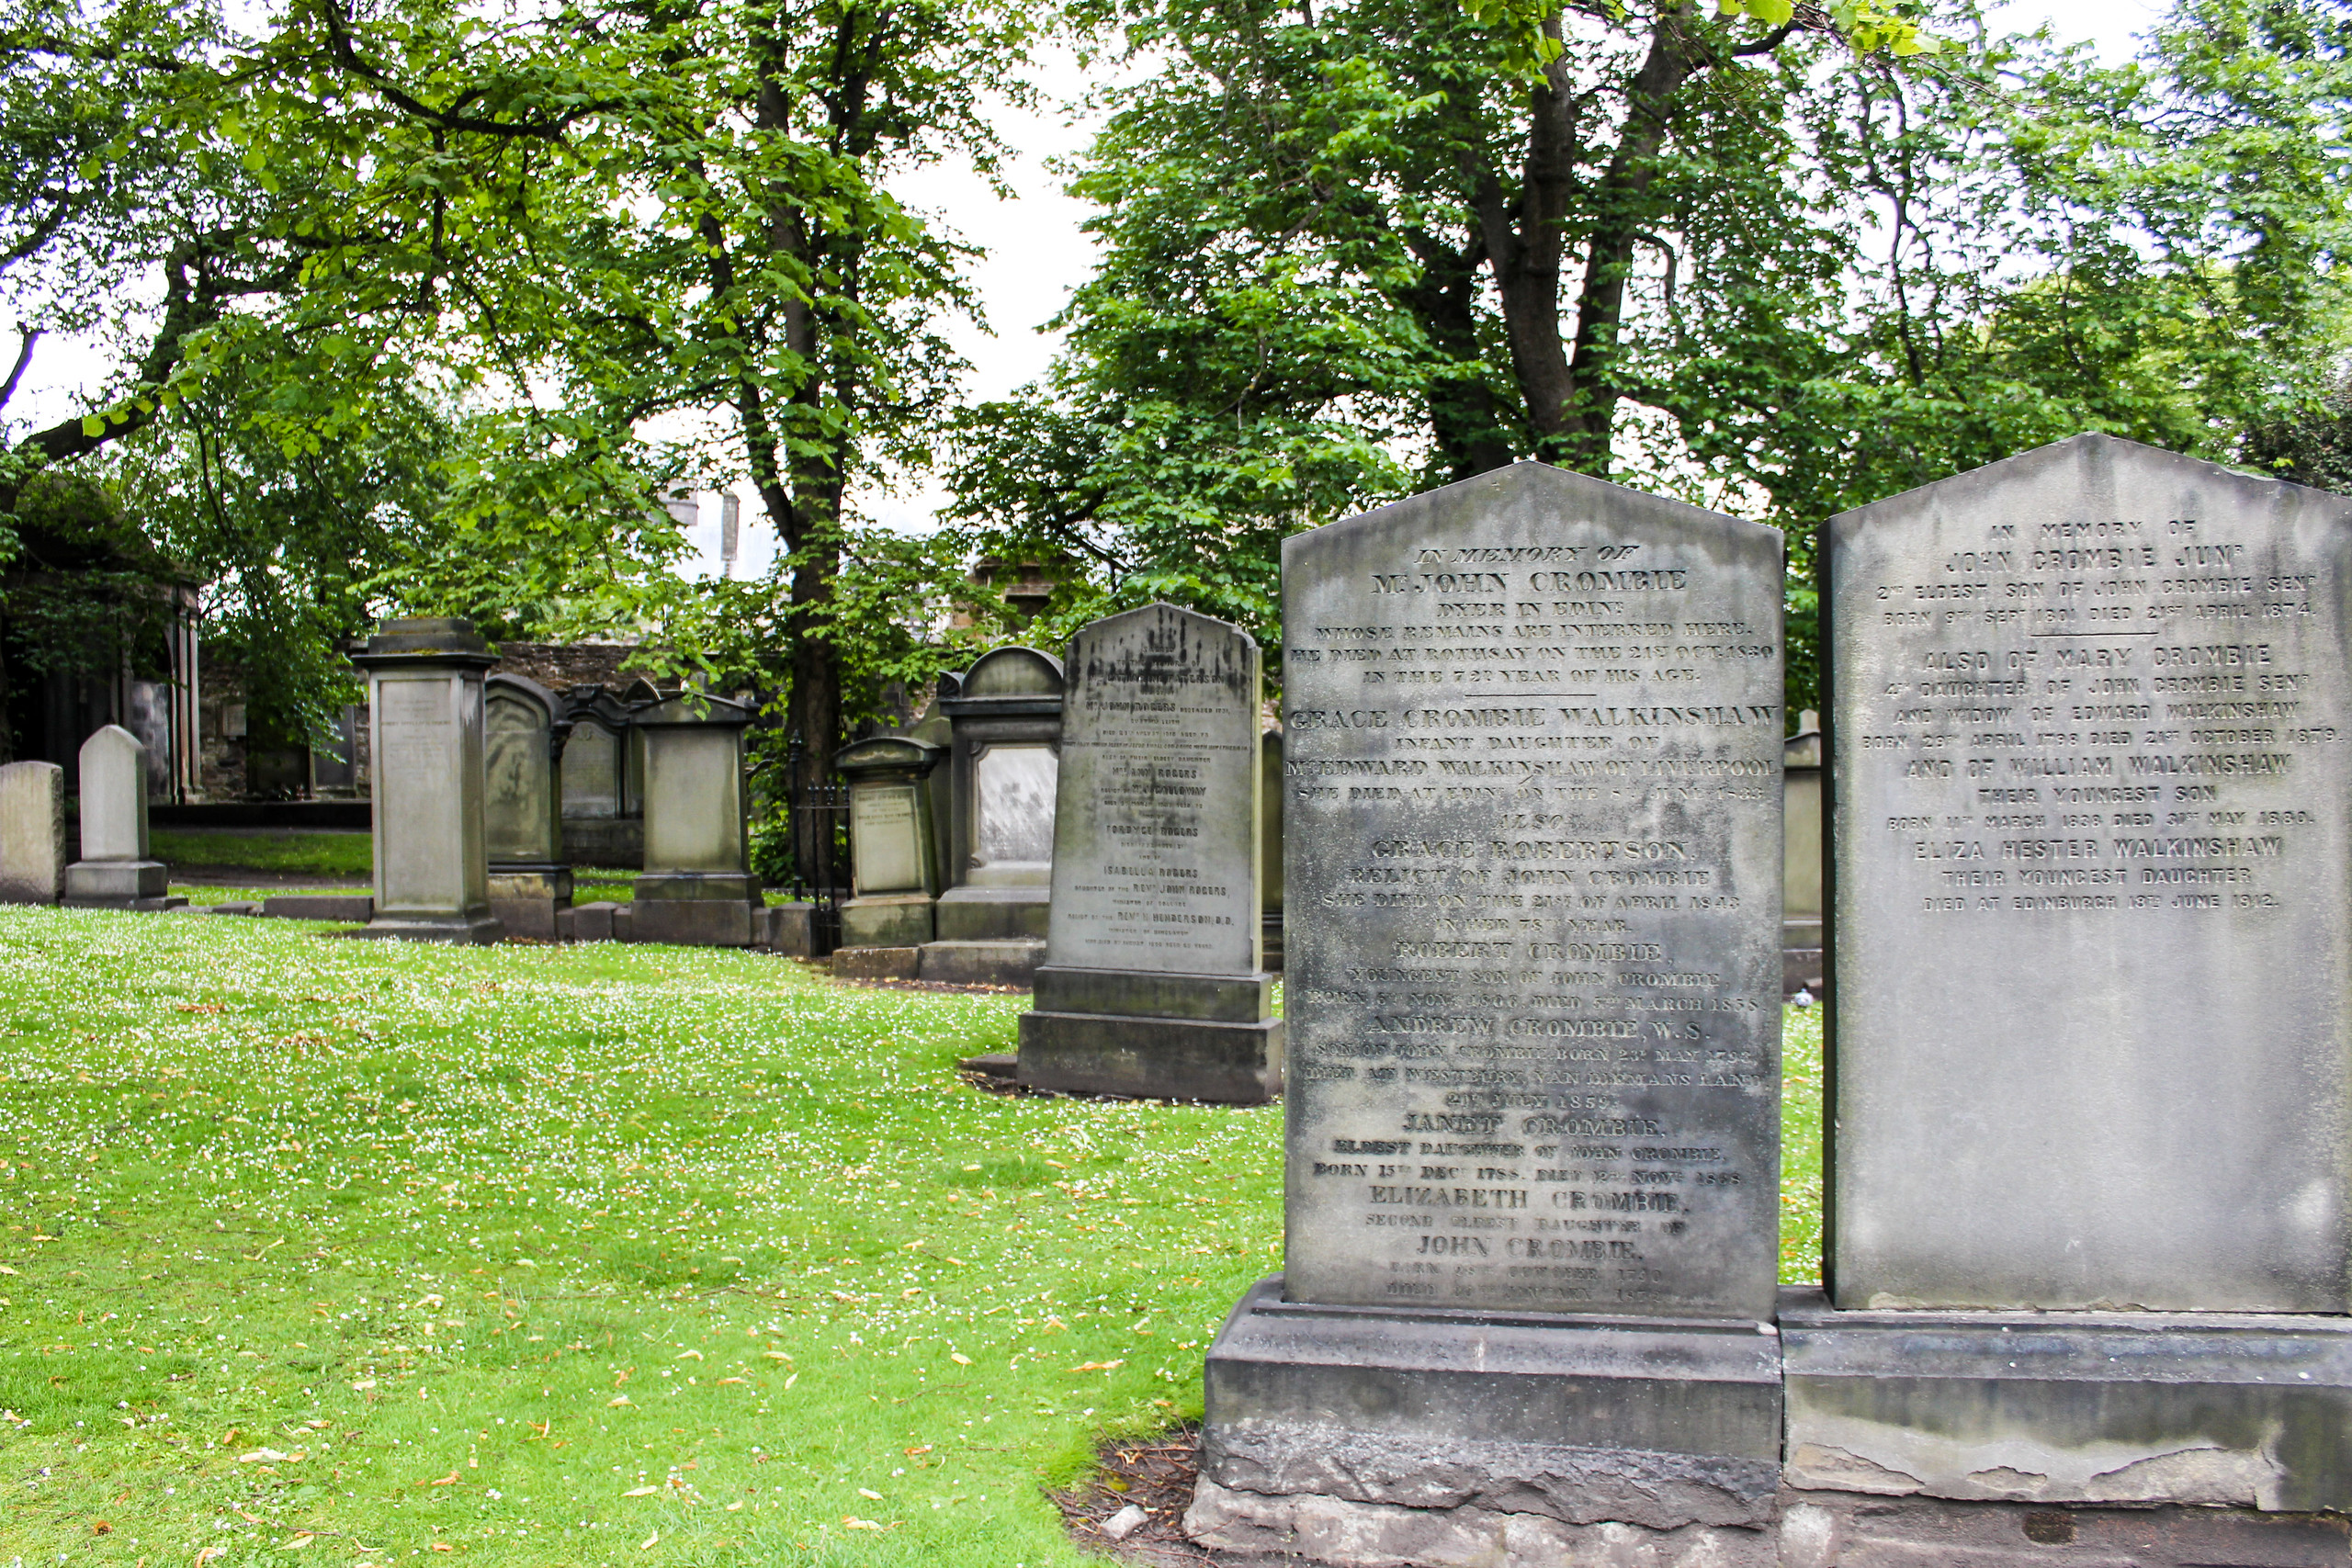 edinburgh 2 days itinerary: don't miss the spooky cemetery